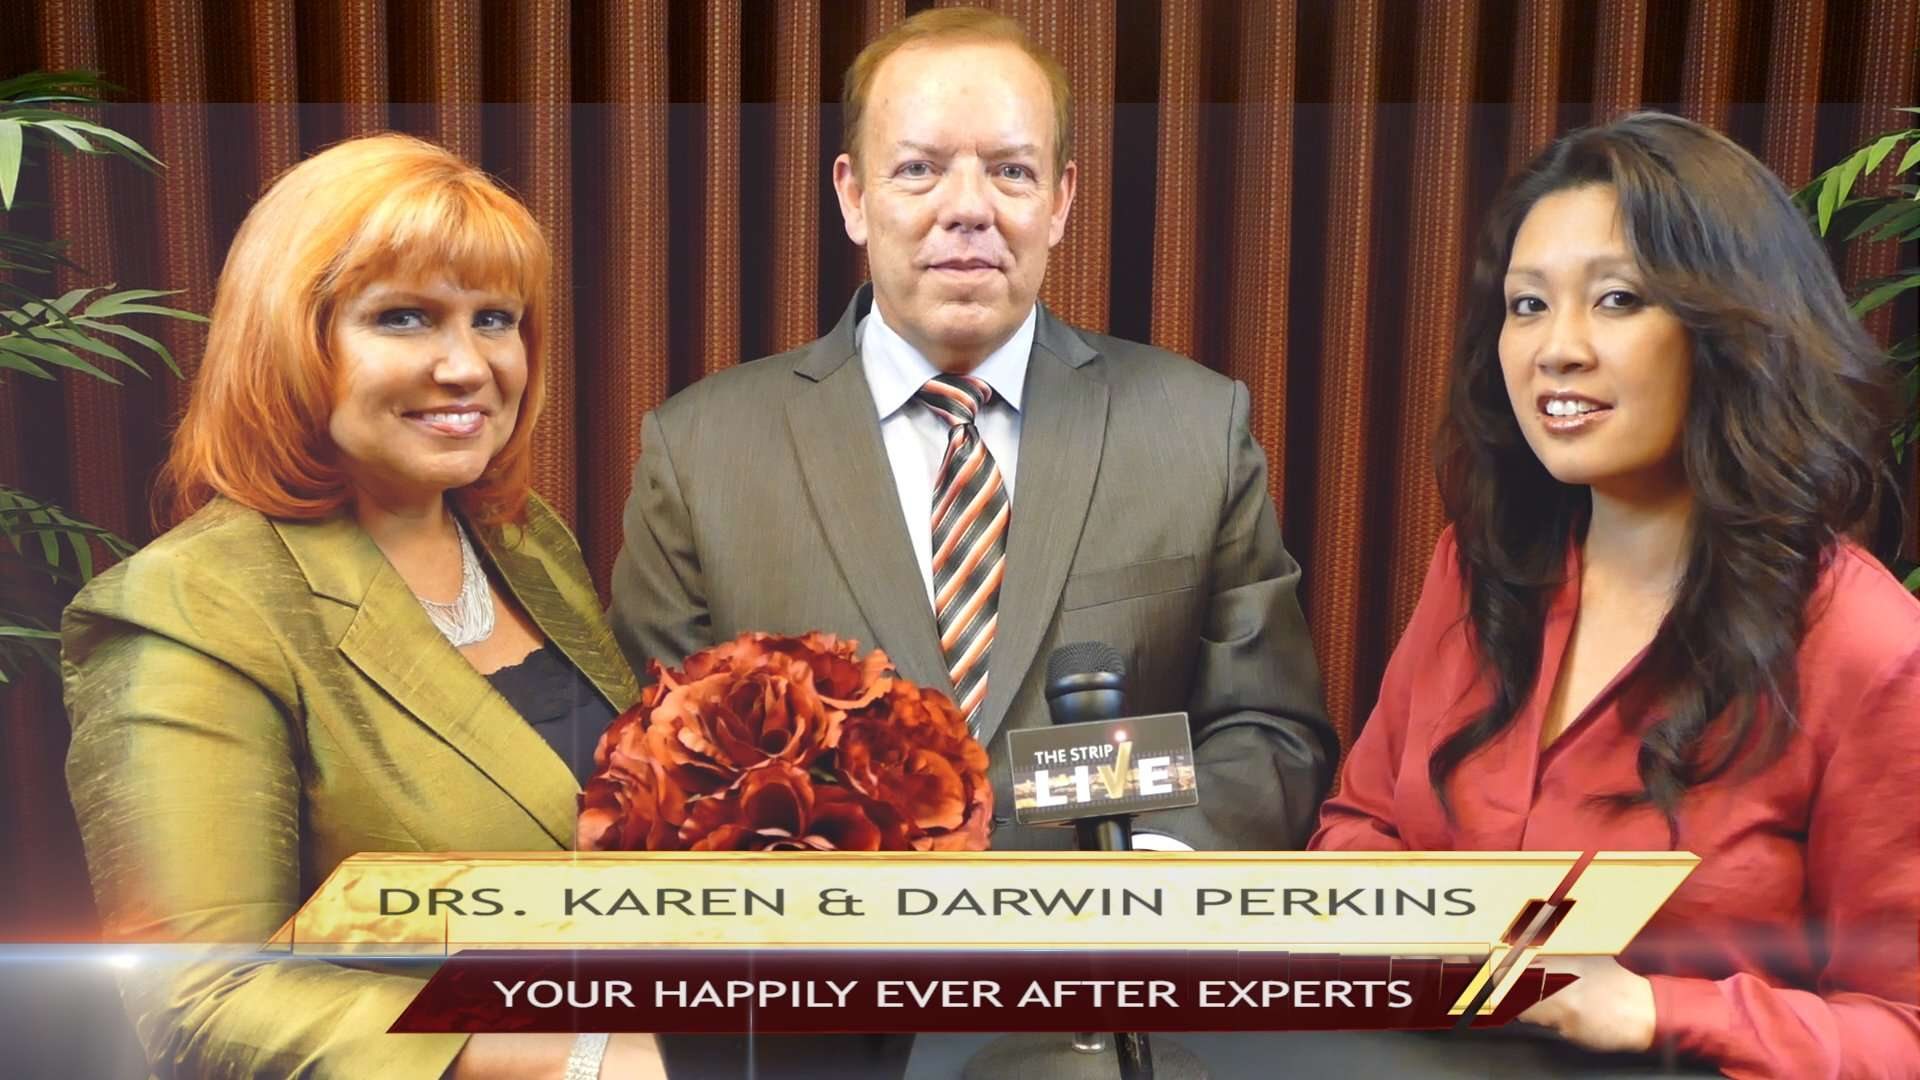 Dr. Karen and Dr. Darwin Perkins say effective communication starts by identifying personality types